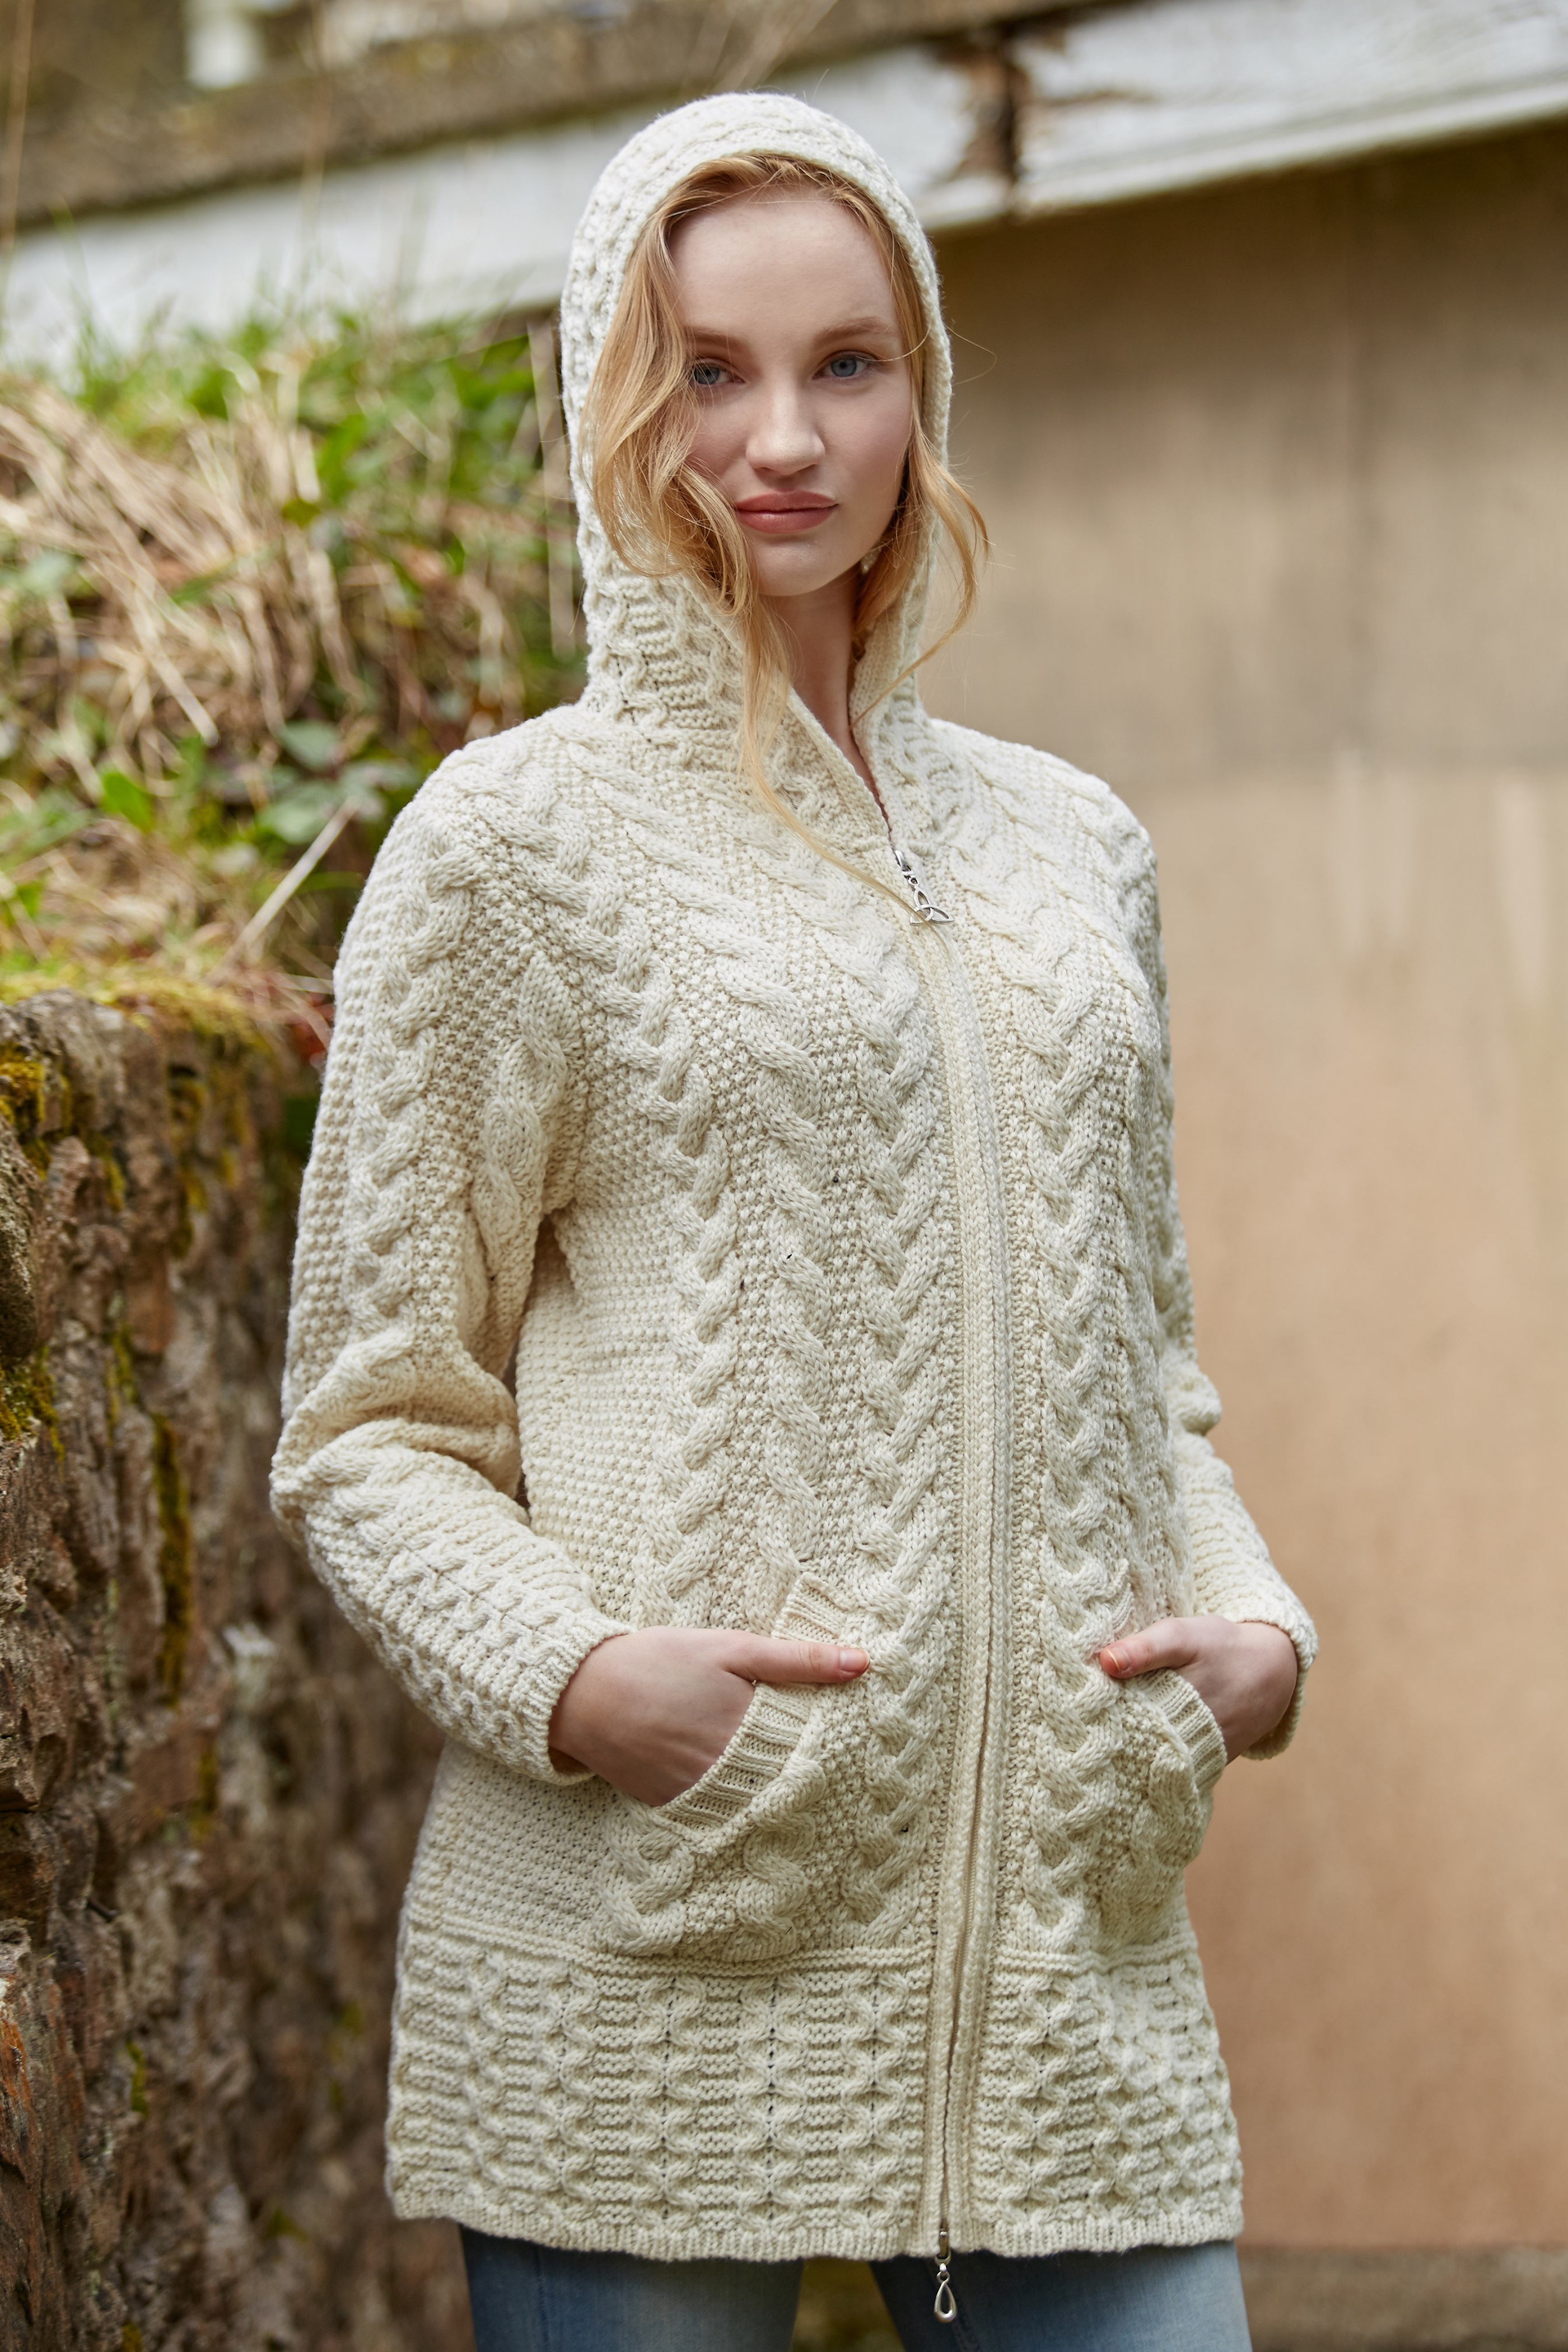 Women's Sweaters Clothing, Shoes & Accessories Women Wool